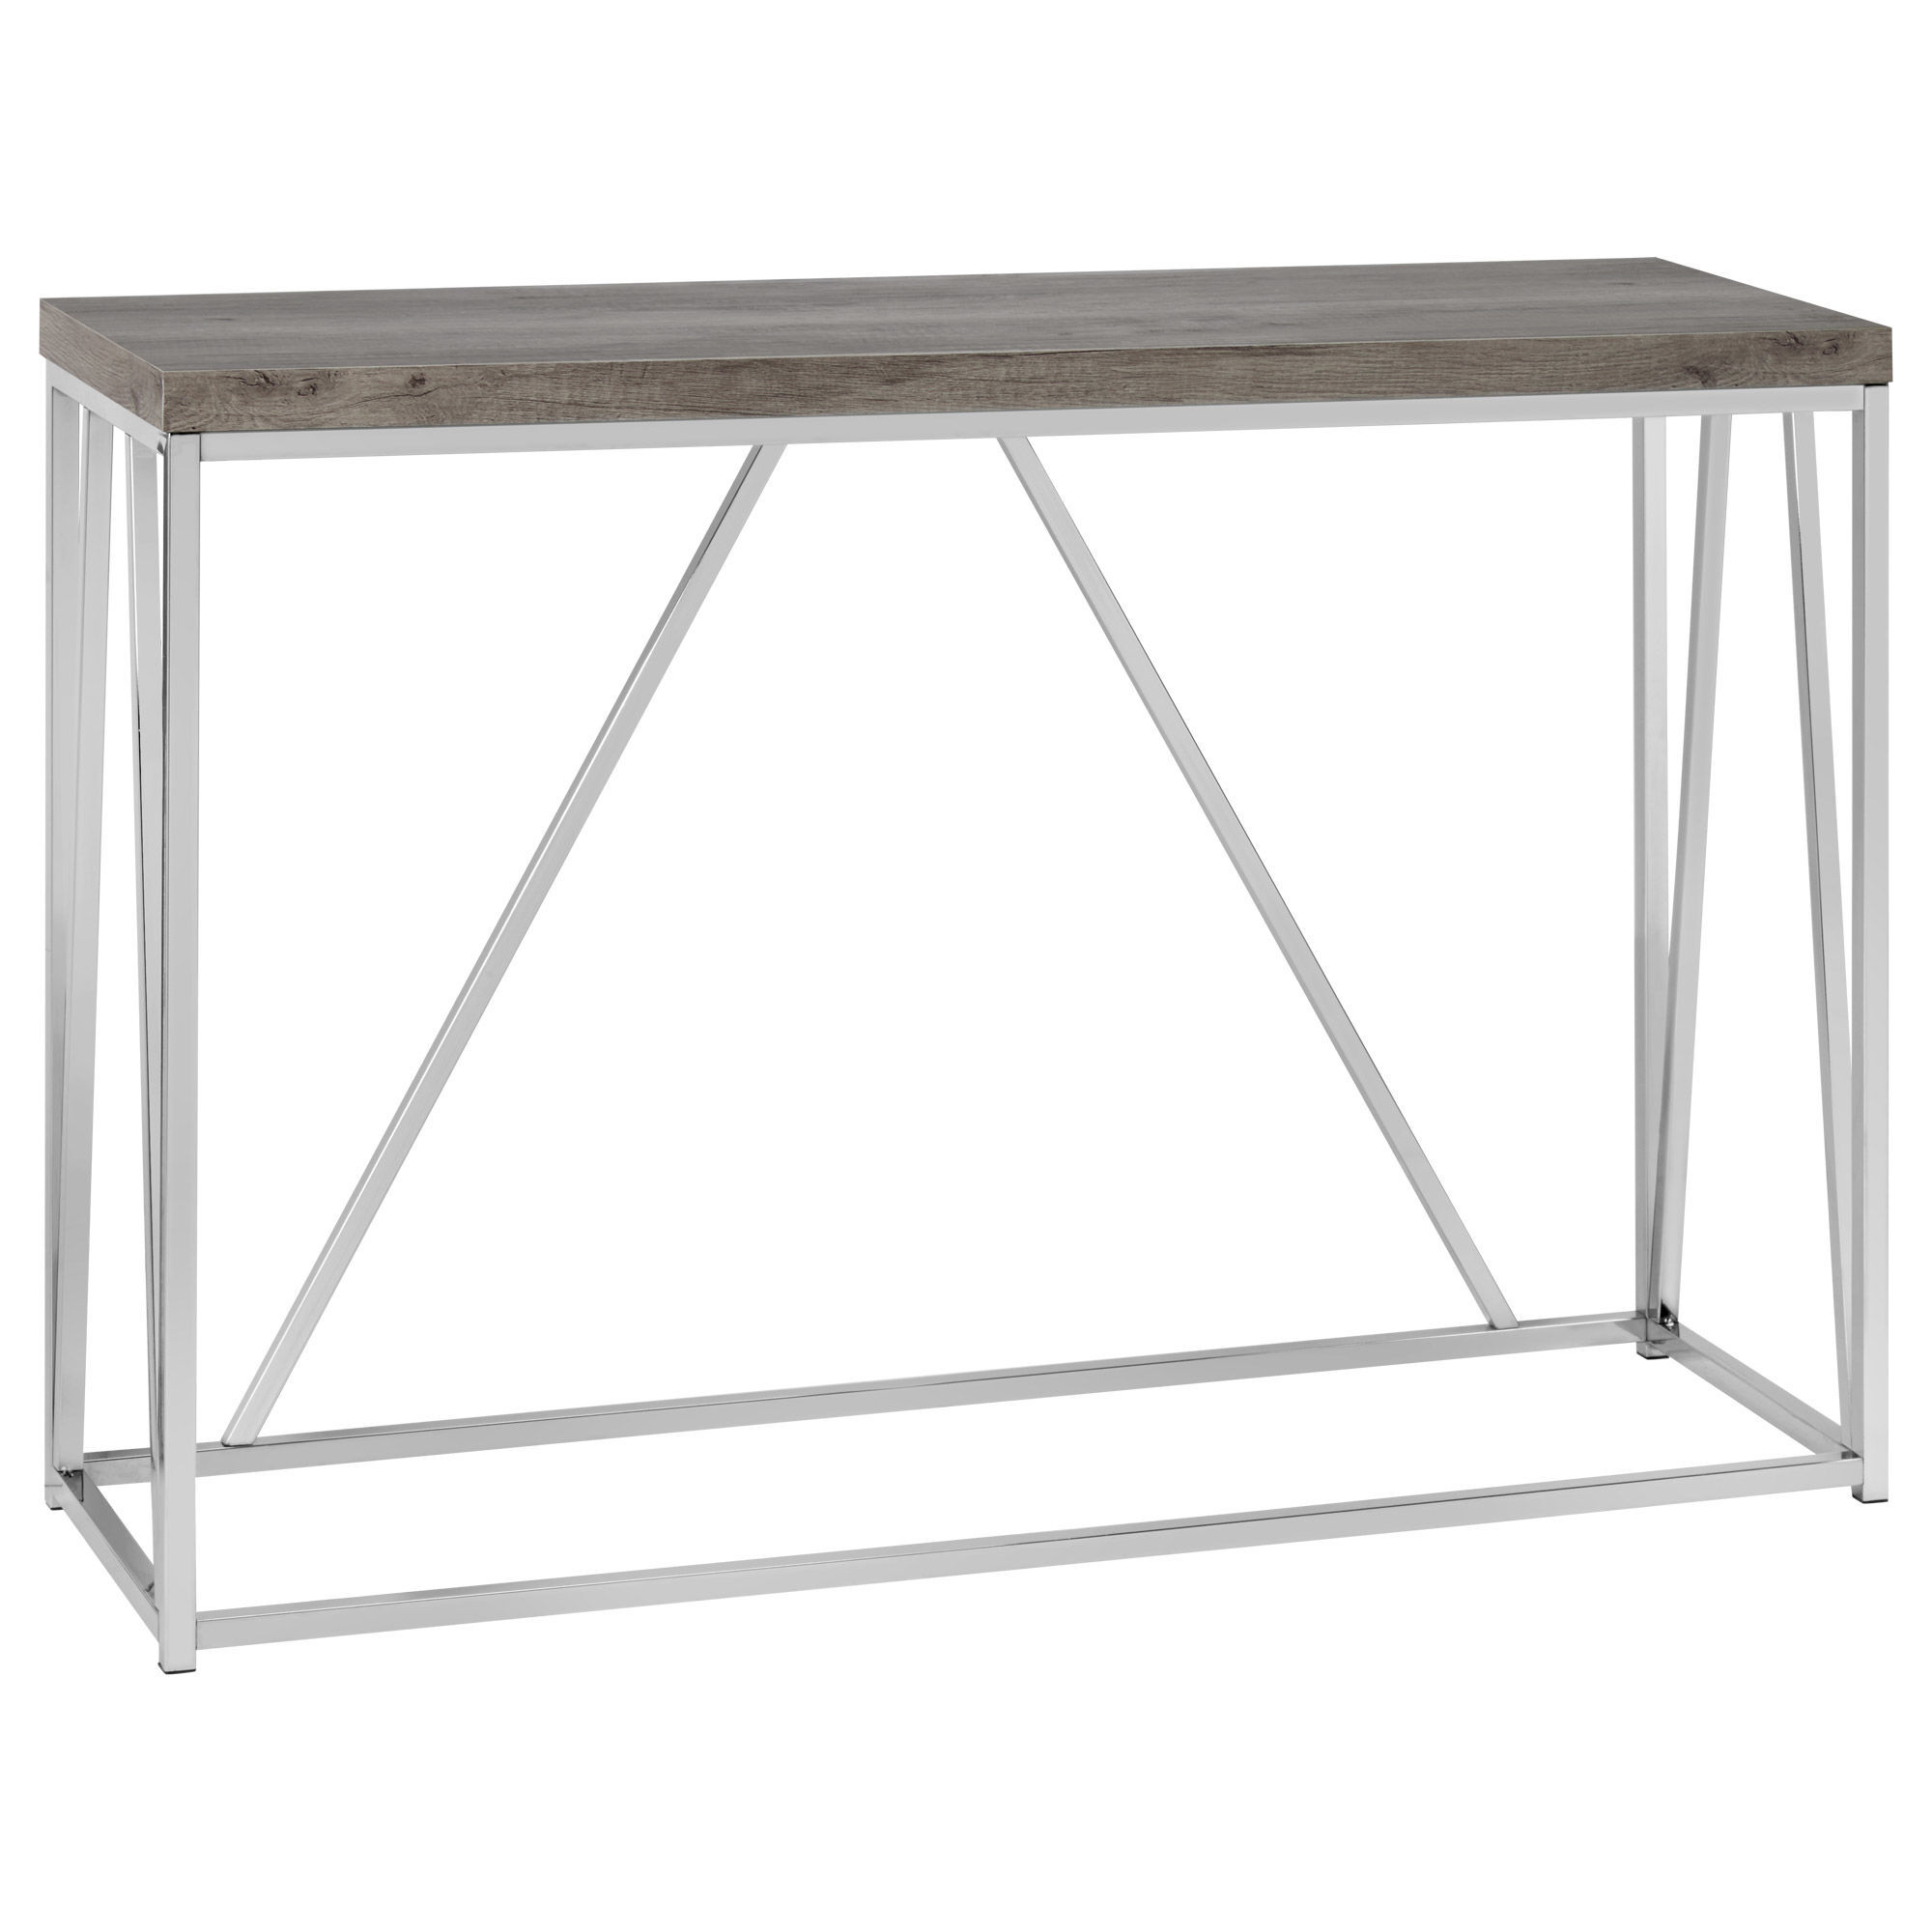 Tables Designed in Canada Great Quality at Great Prices Bouclaircom